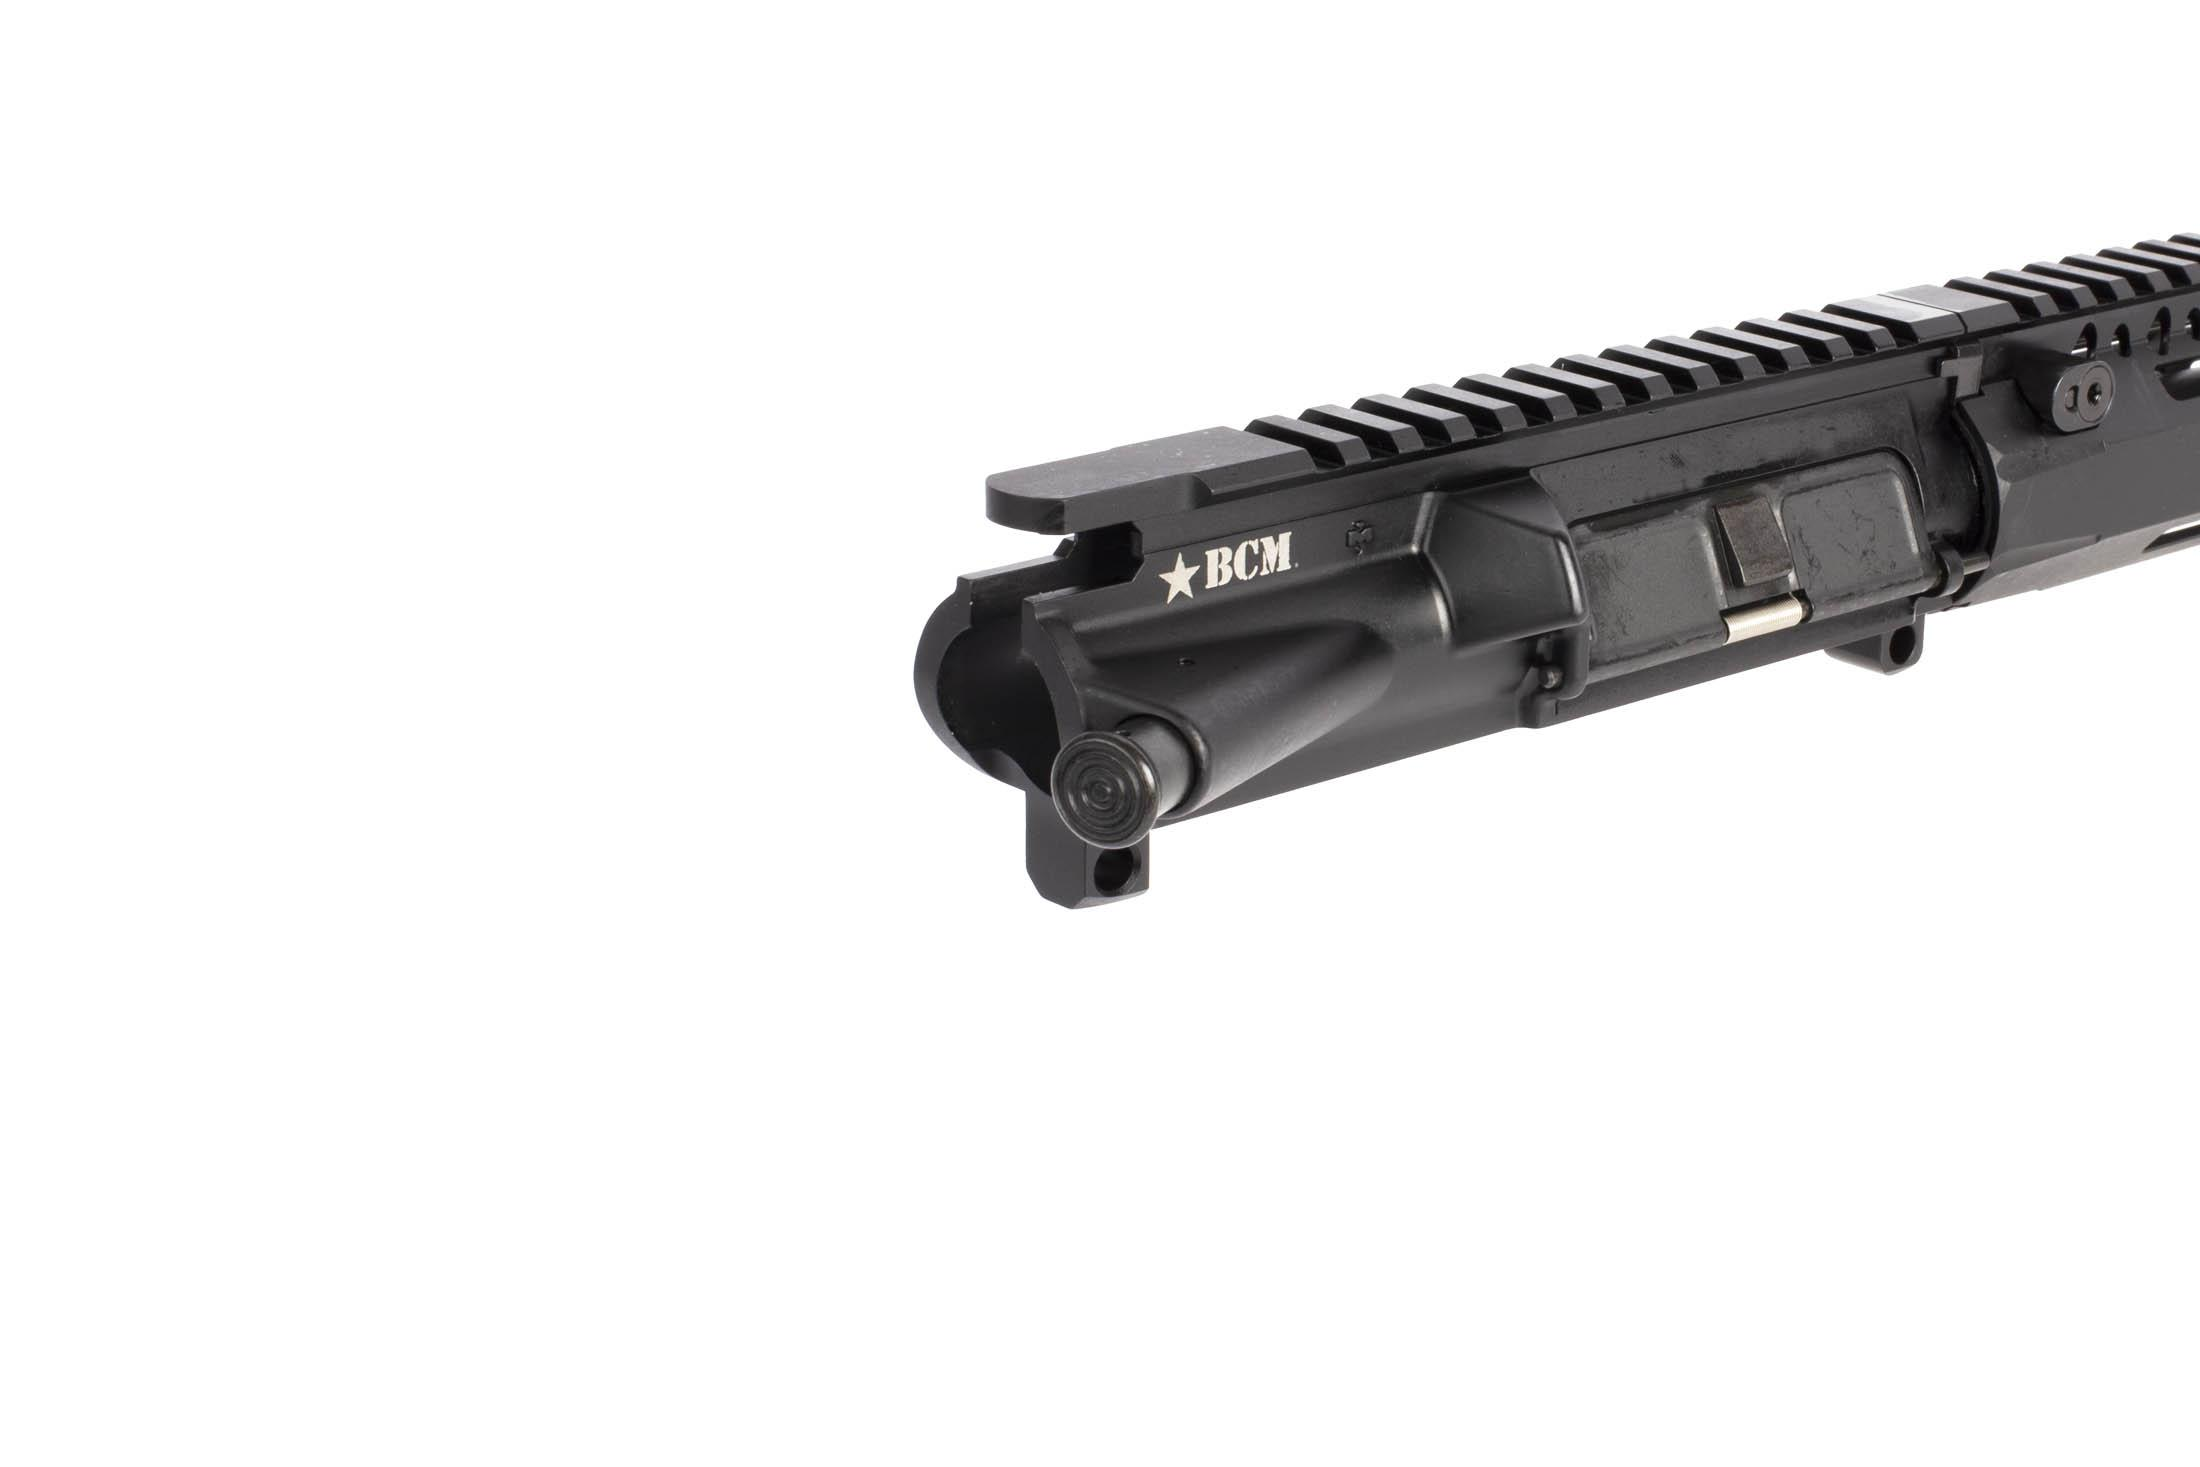 Bravo Company 14.5 inch enhanced light weight ar 15 barreled upper does not include charging handle or bolt carrier group